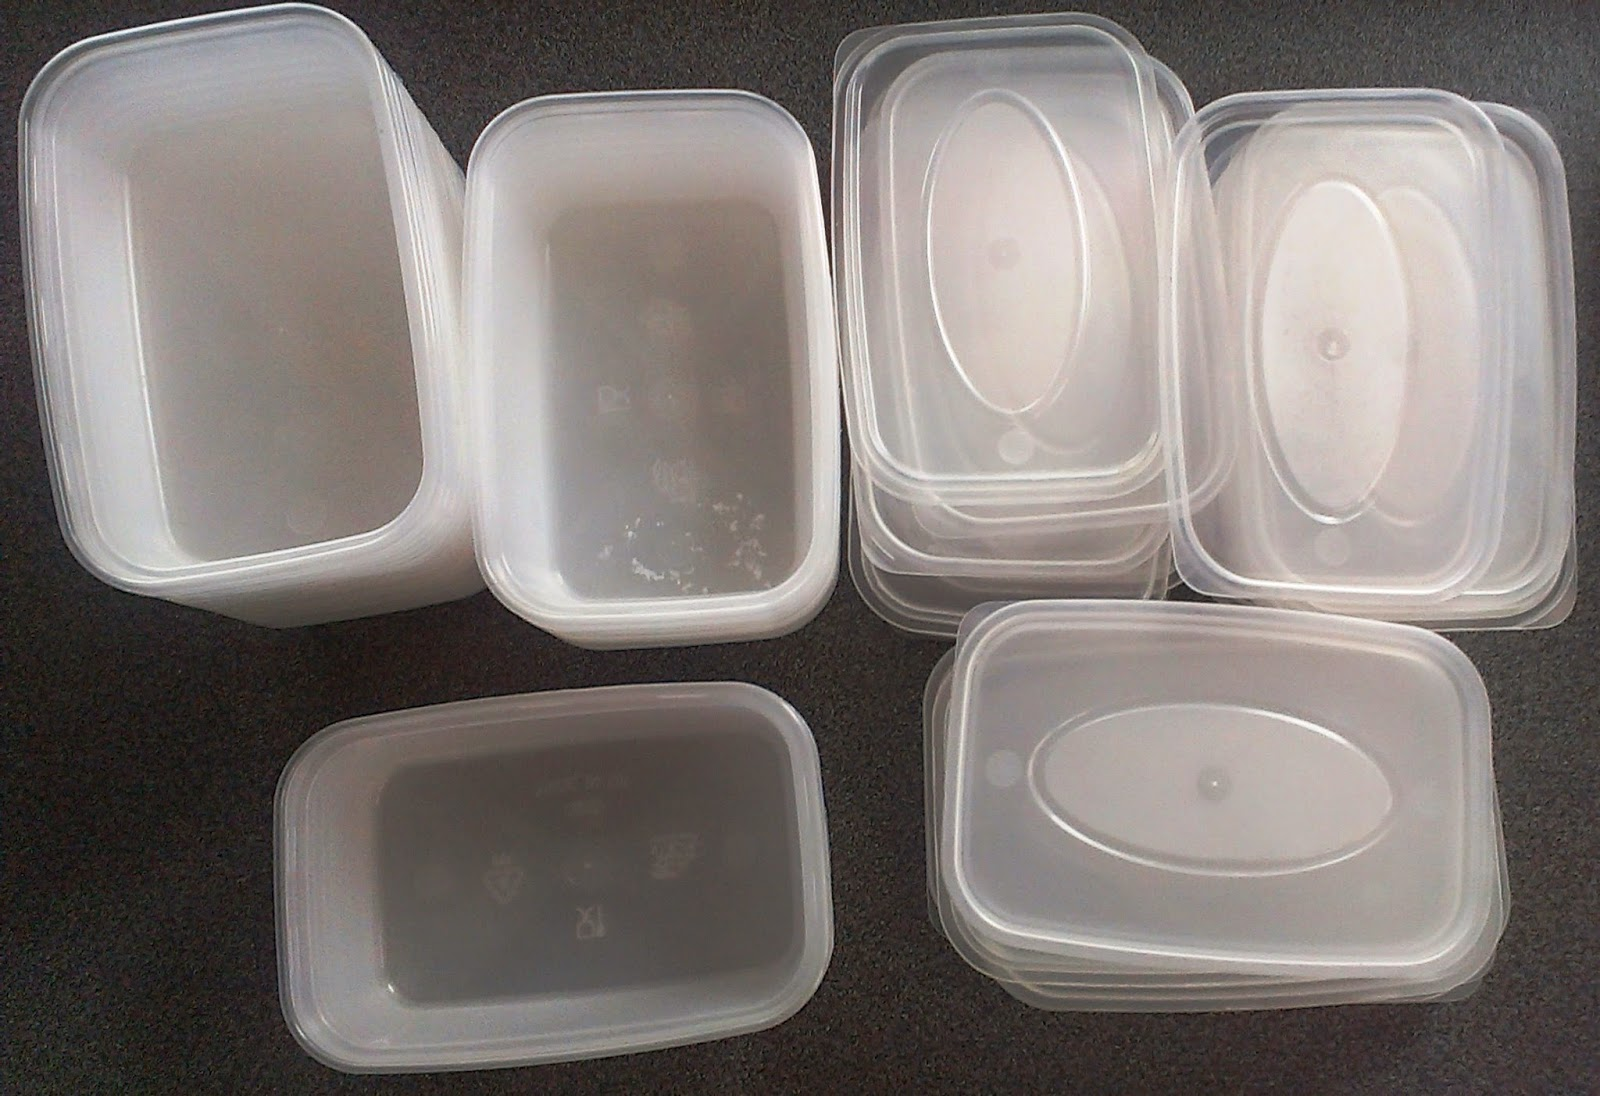 Chinese Takeaway Boxes